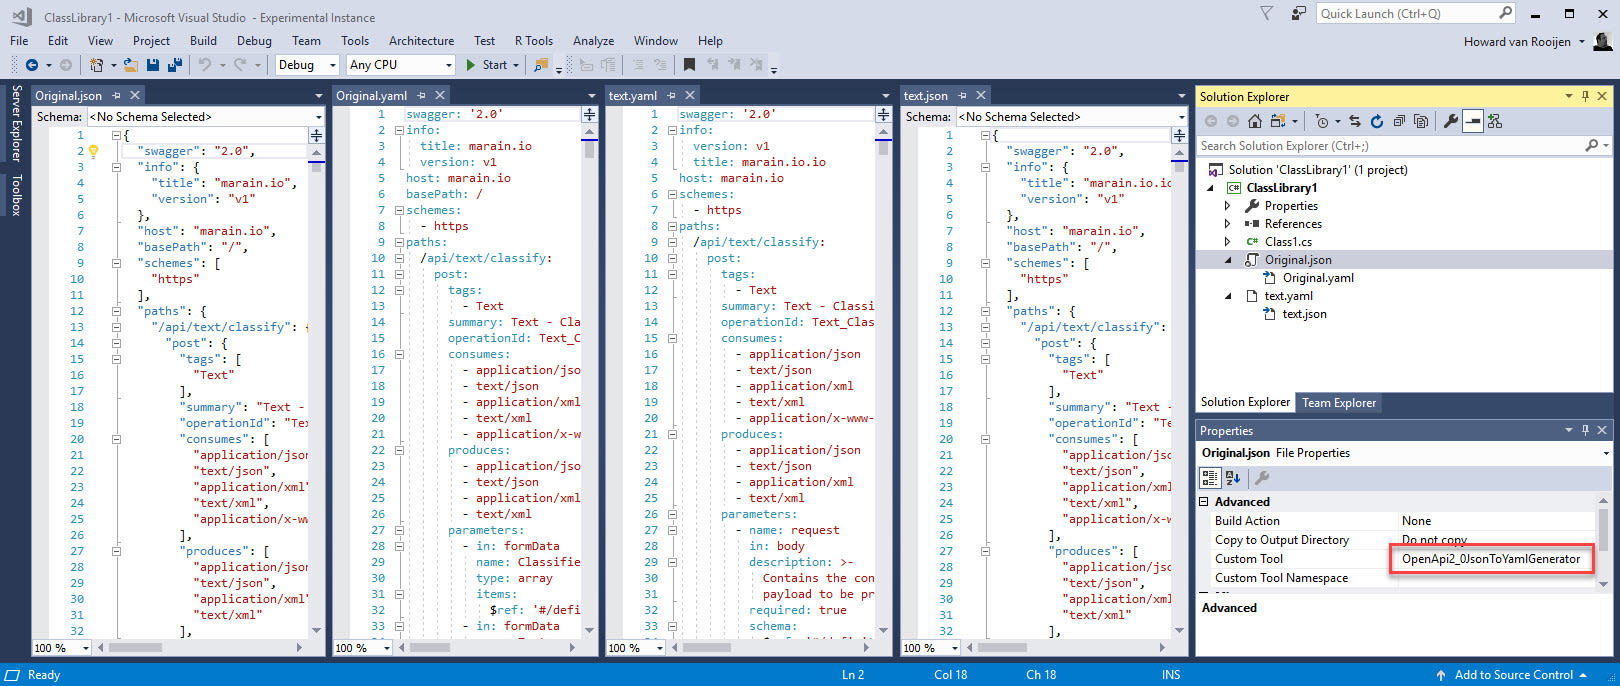 OpenAPI code generators for Visual Studio